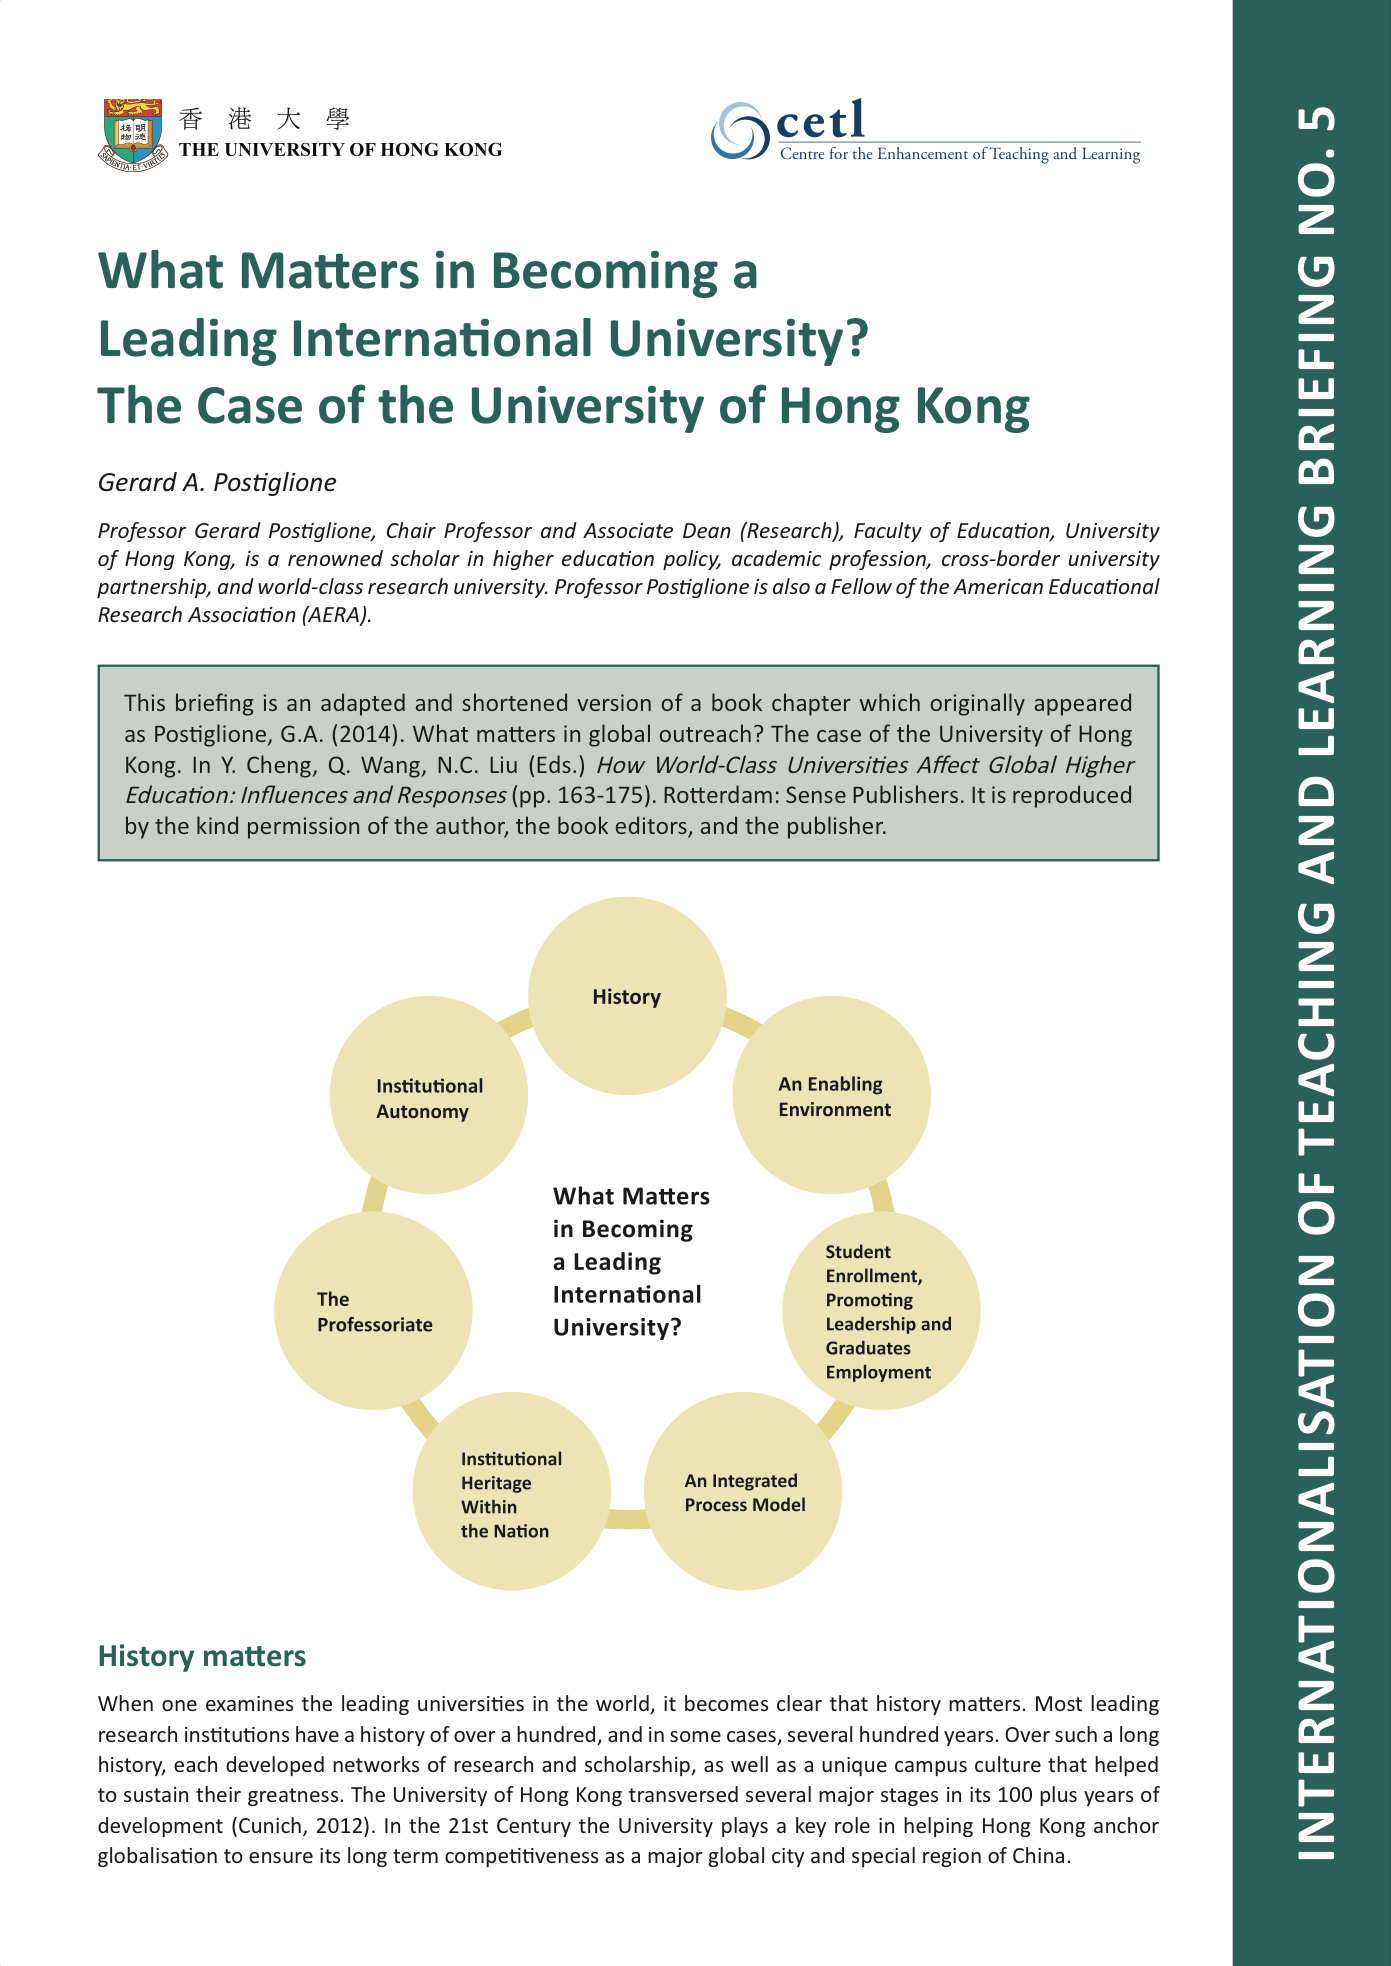 5. What Matters in Becoming a Leading International University? The Case of the University of Hong Kong